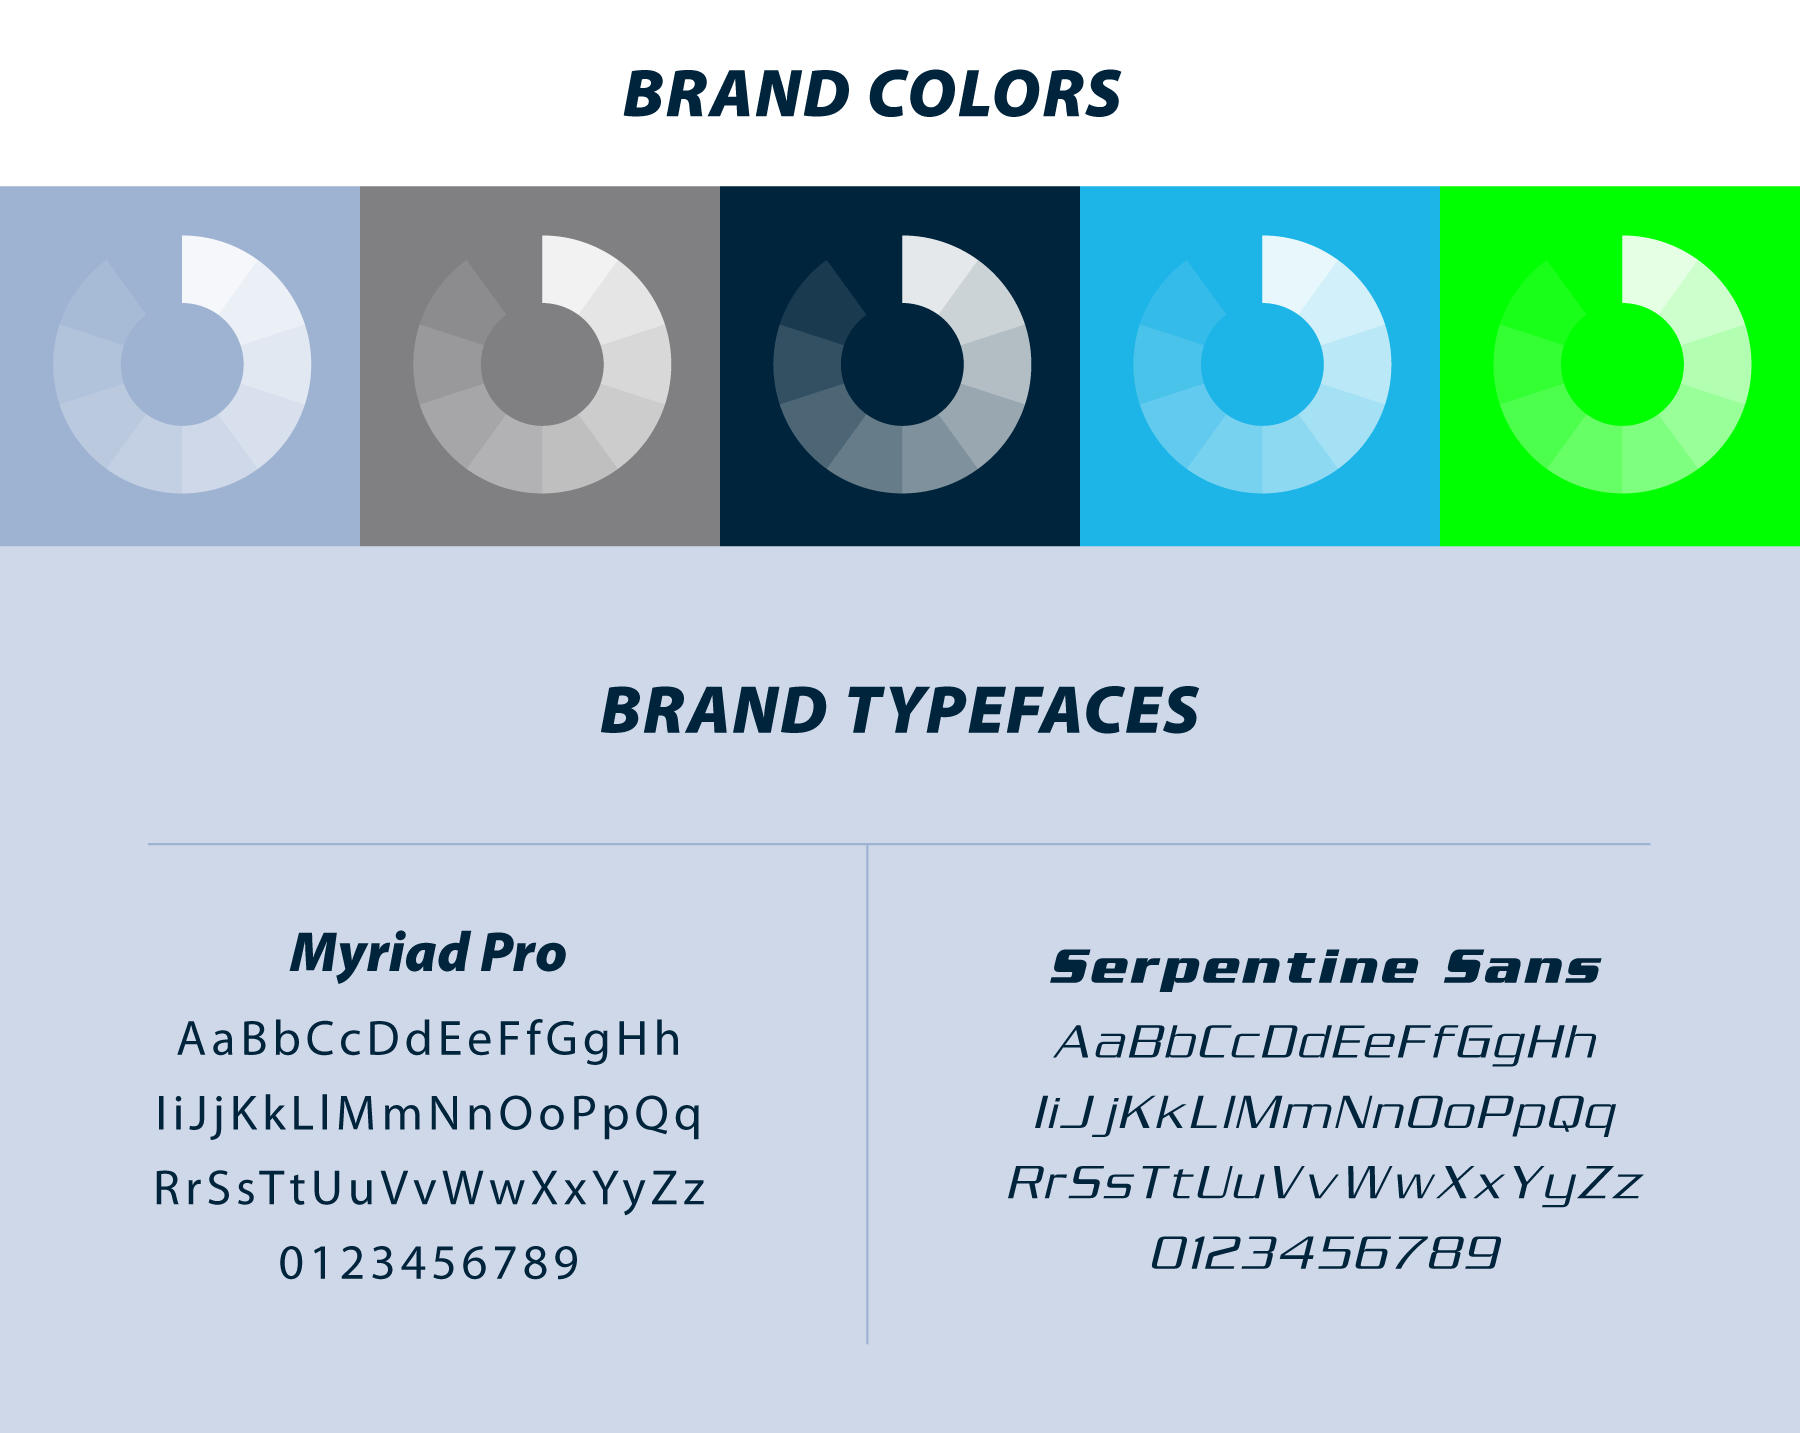 TidalWave branding colors and typefaces